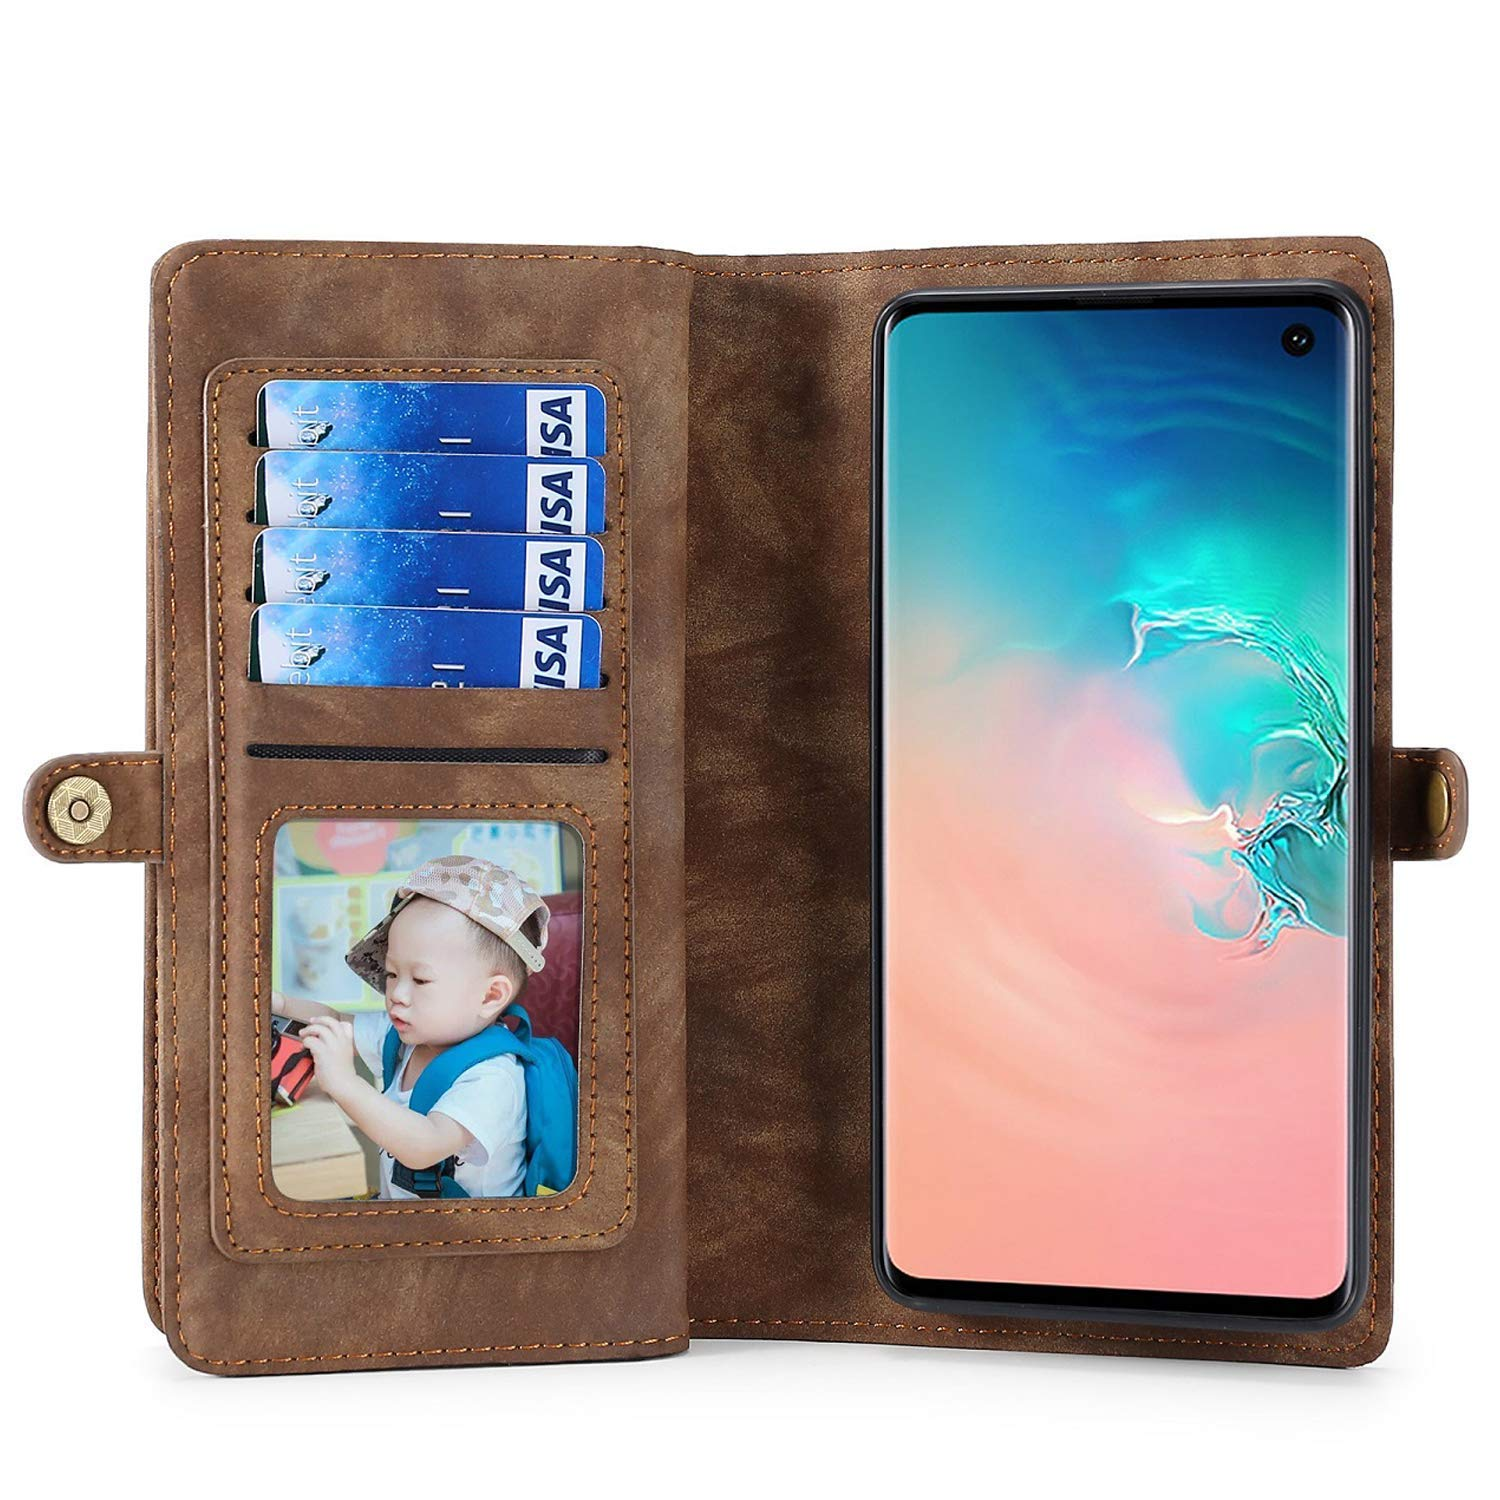 6.1 inch Spritech iPhone XR Wallet Case,Handmade Leather Large Capacity Detachable Zipper Wallet Cover for iPhone XR